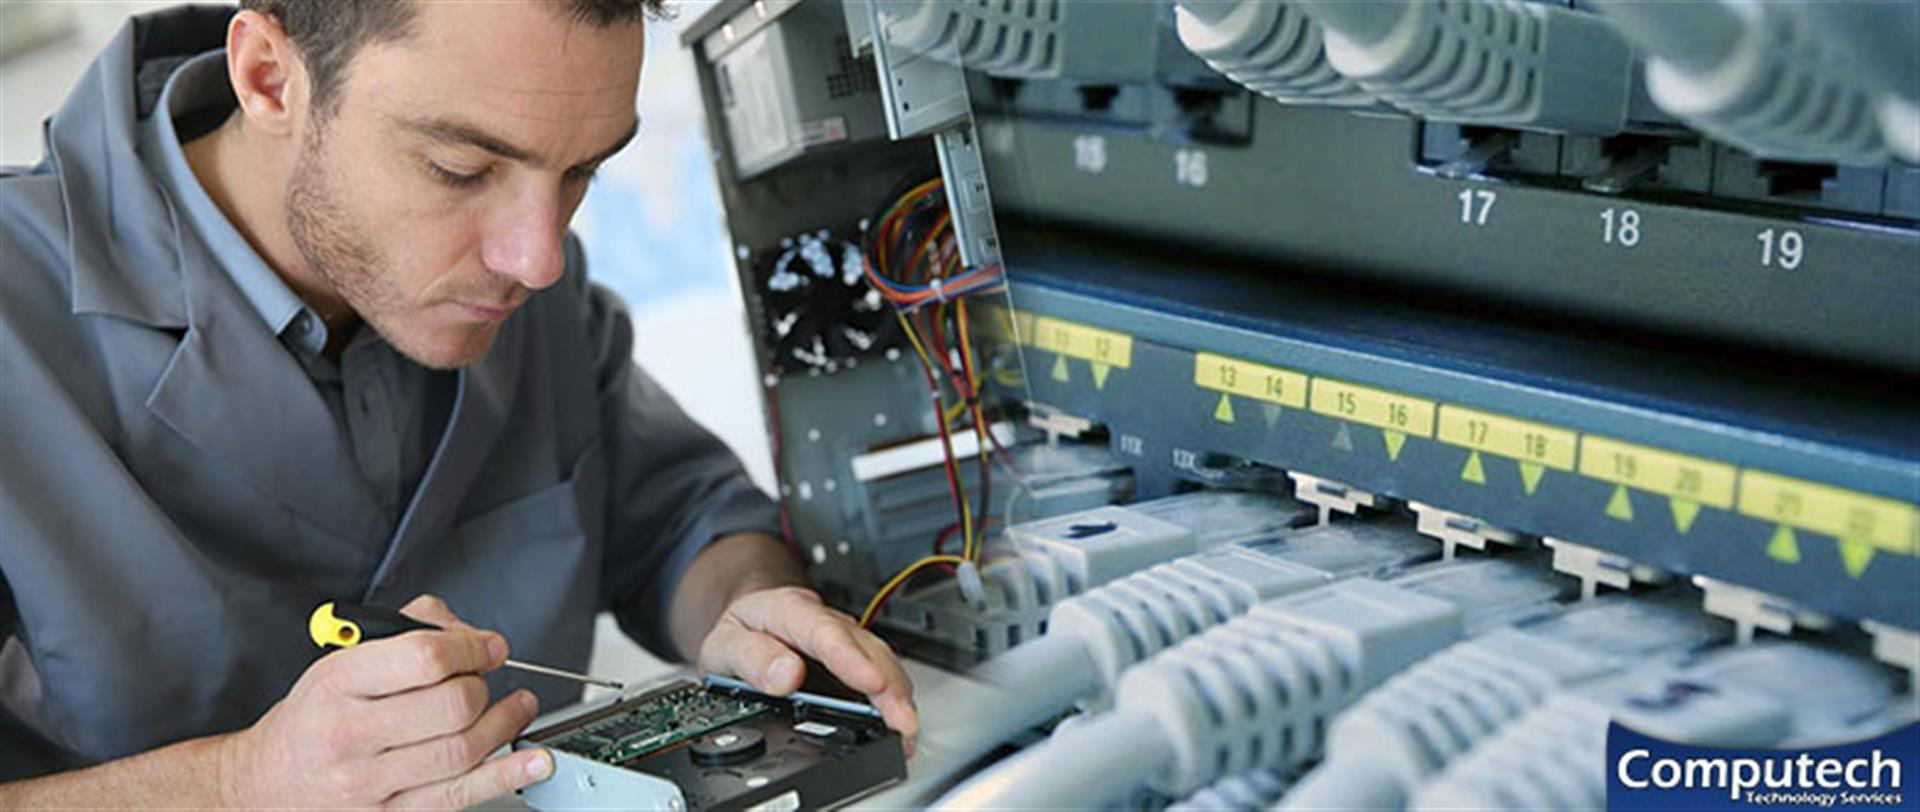 Glencoe Alabama Onsite Computer PC & Printer Repair, Networks, Voice & Data Wiring Solutions